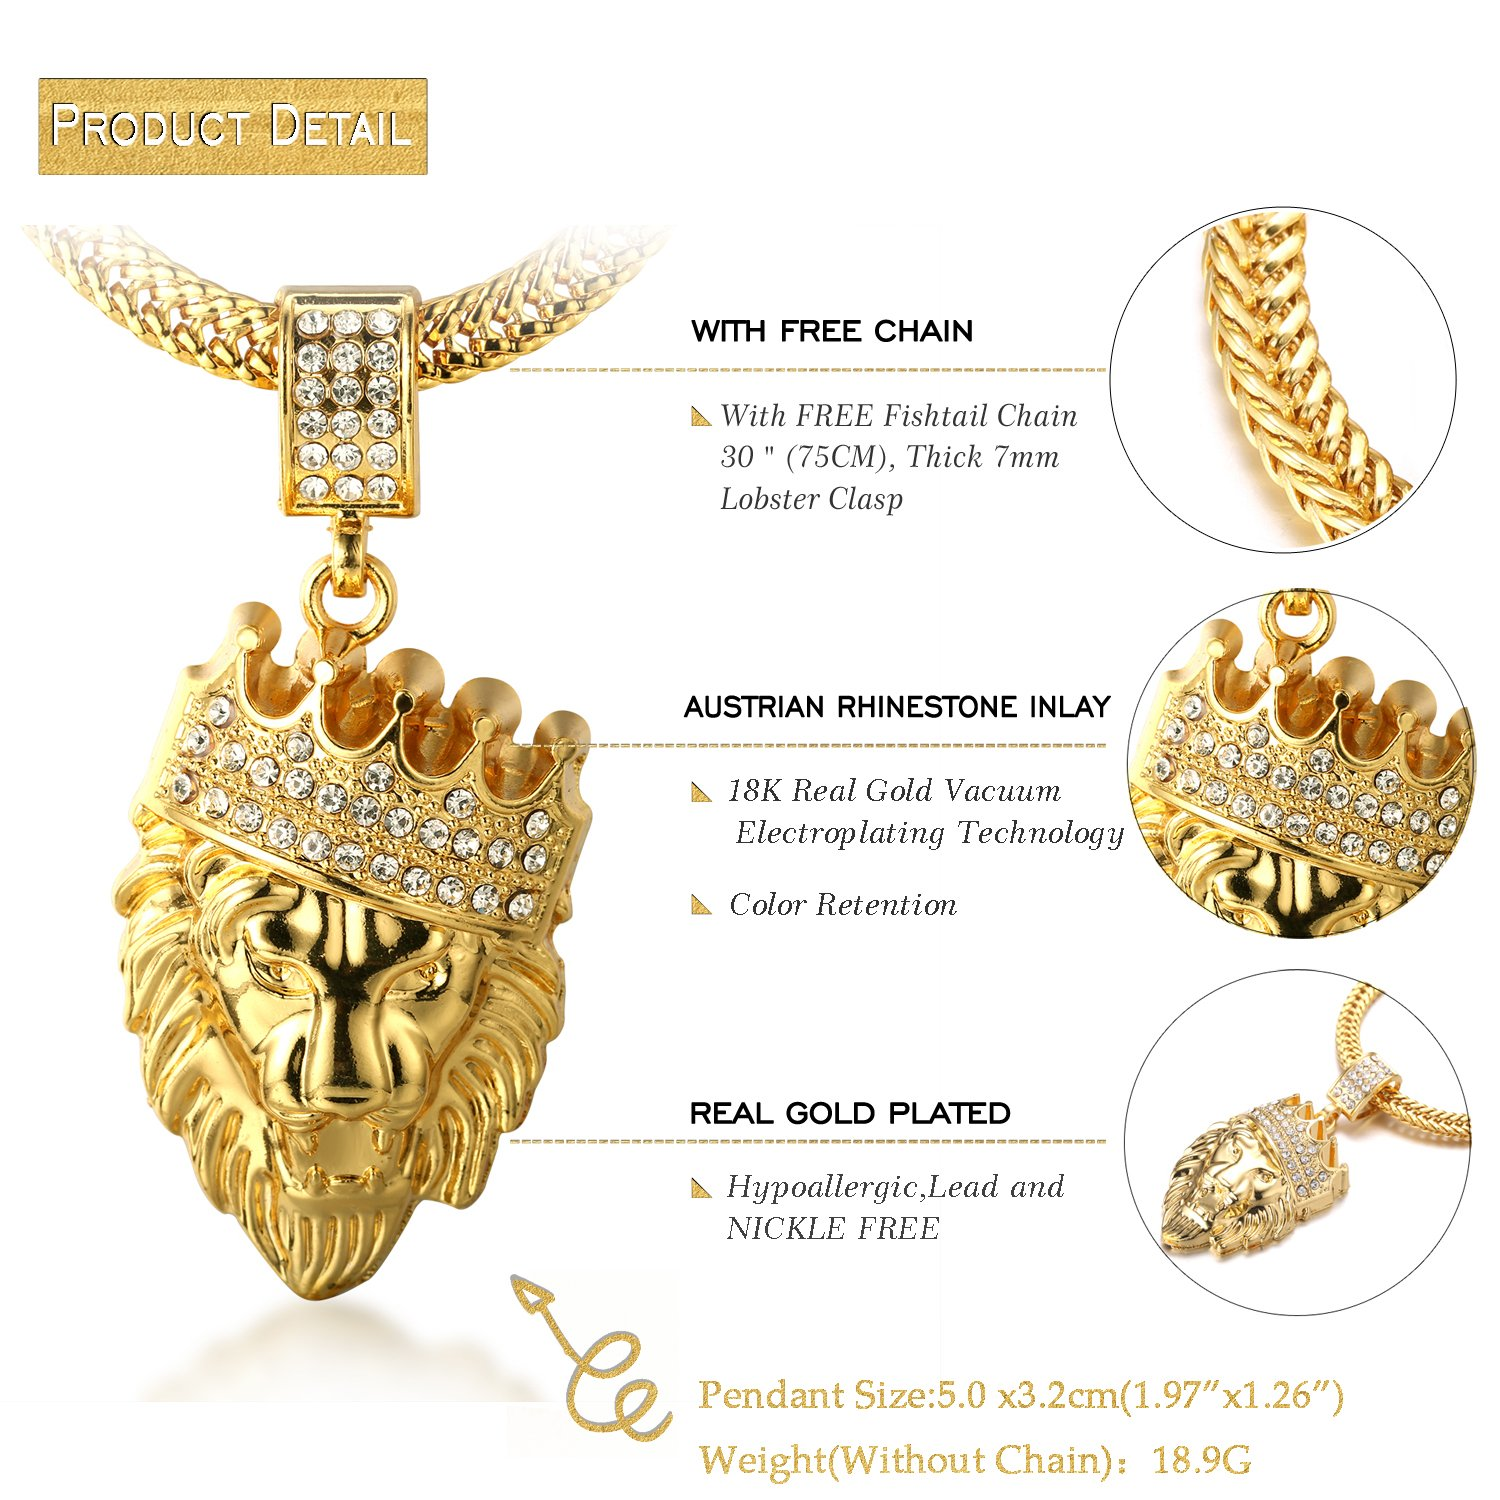 Bundle offer 18k gold plated amp white gold plated necklace 2 ring - Halukakah Kings Landing Men S 18k Real Gold Plated Crown Lion Pendant Necklace With Free Sharktail Chain 30 Amazon Com